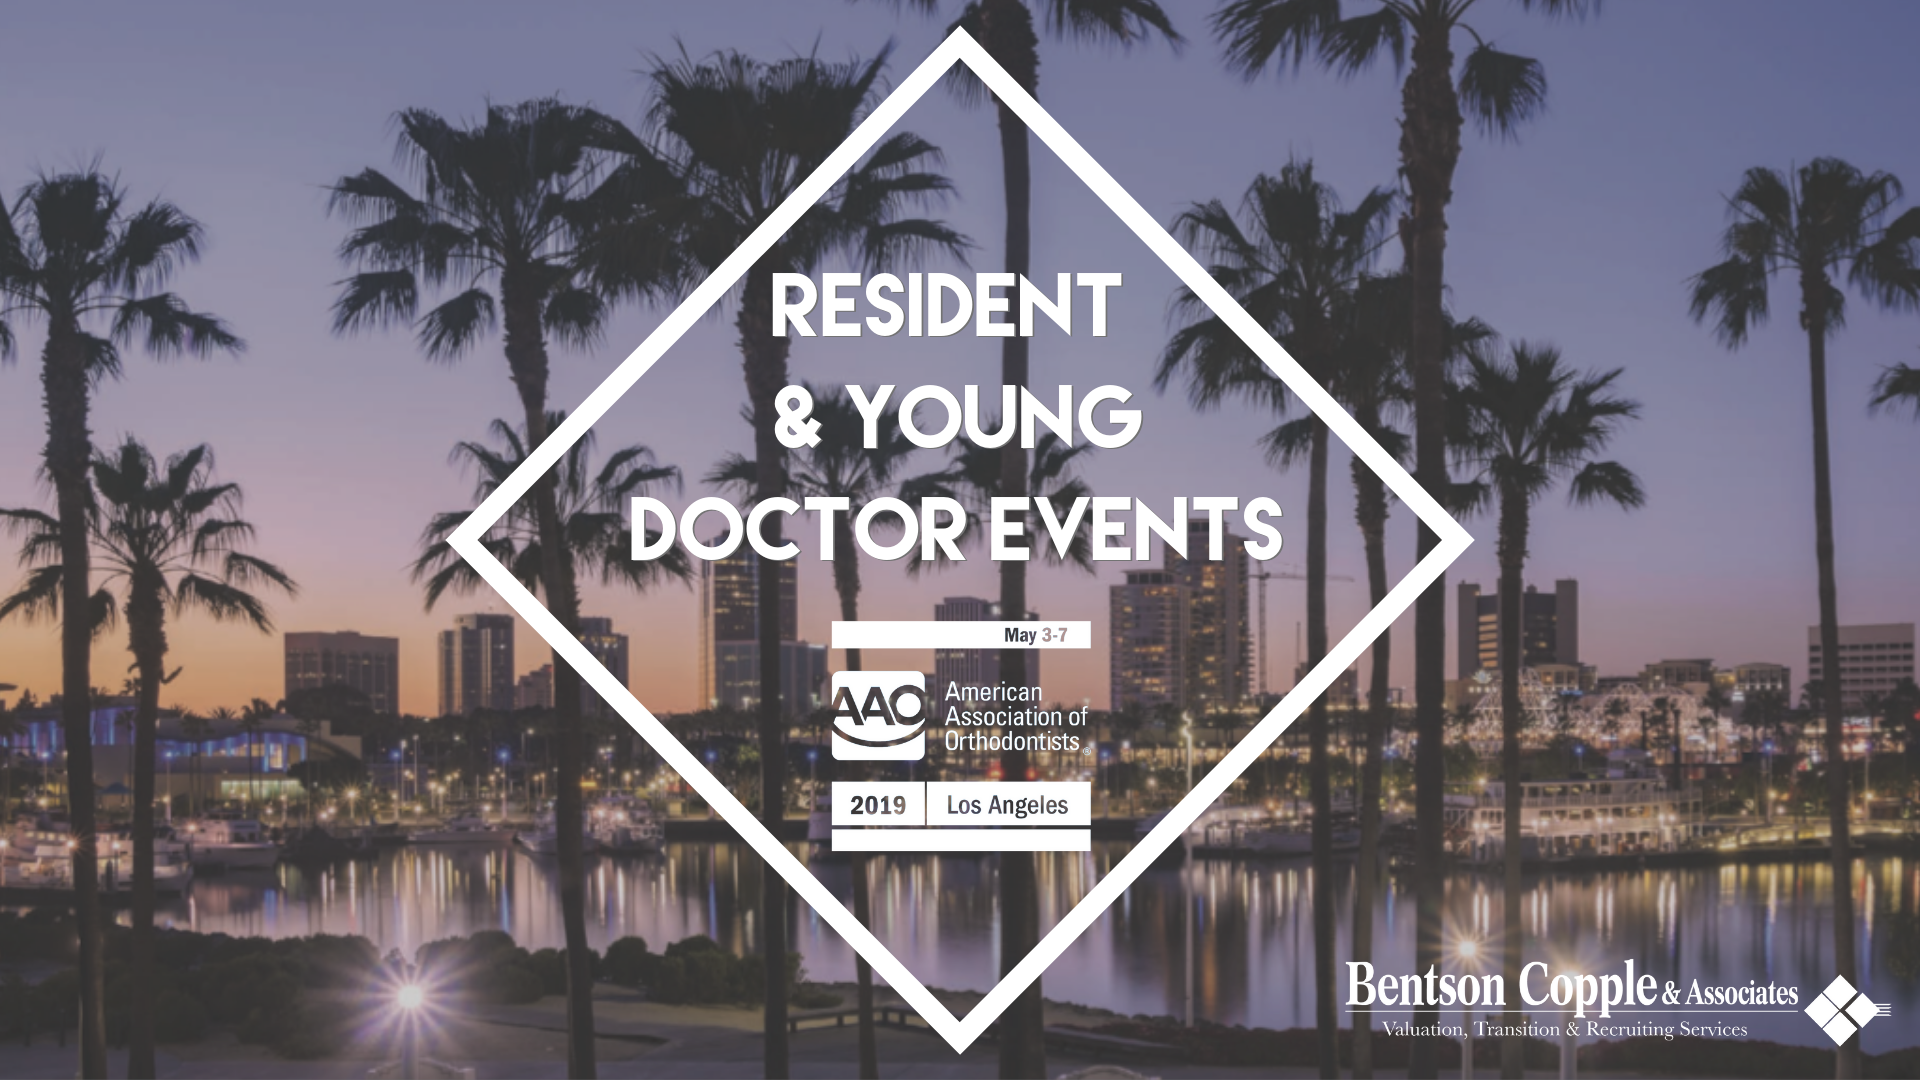 AAO 2019 Resident & Young Doctor